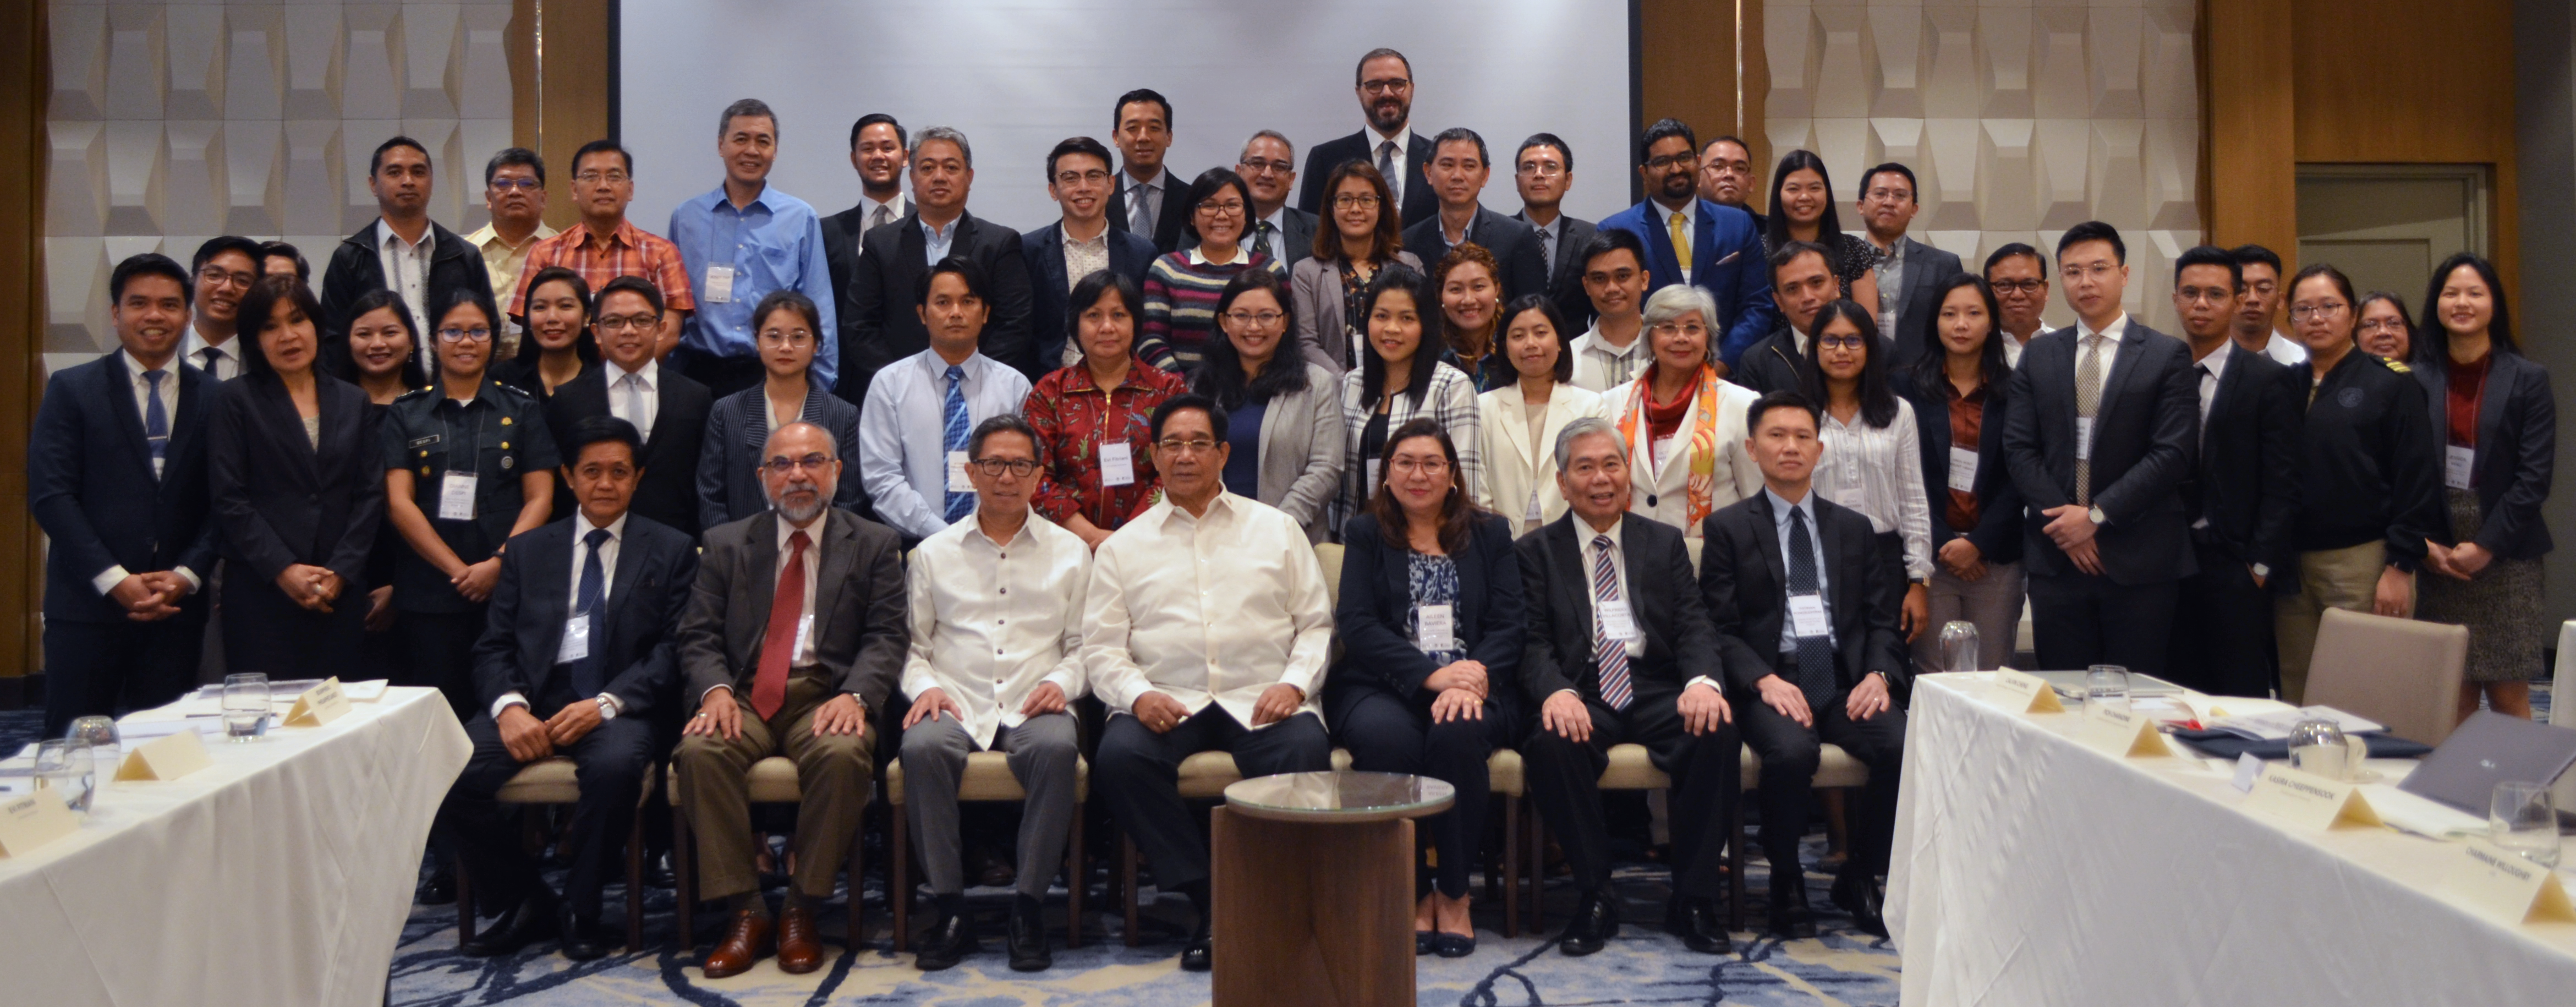 Pathways Hosts International Workshop as ASEAN-ISIS Think Tank Network Chair